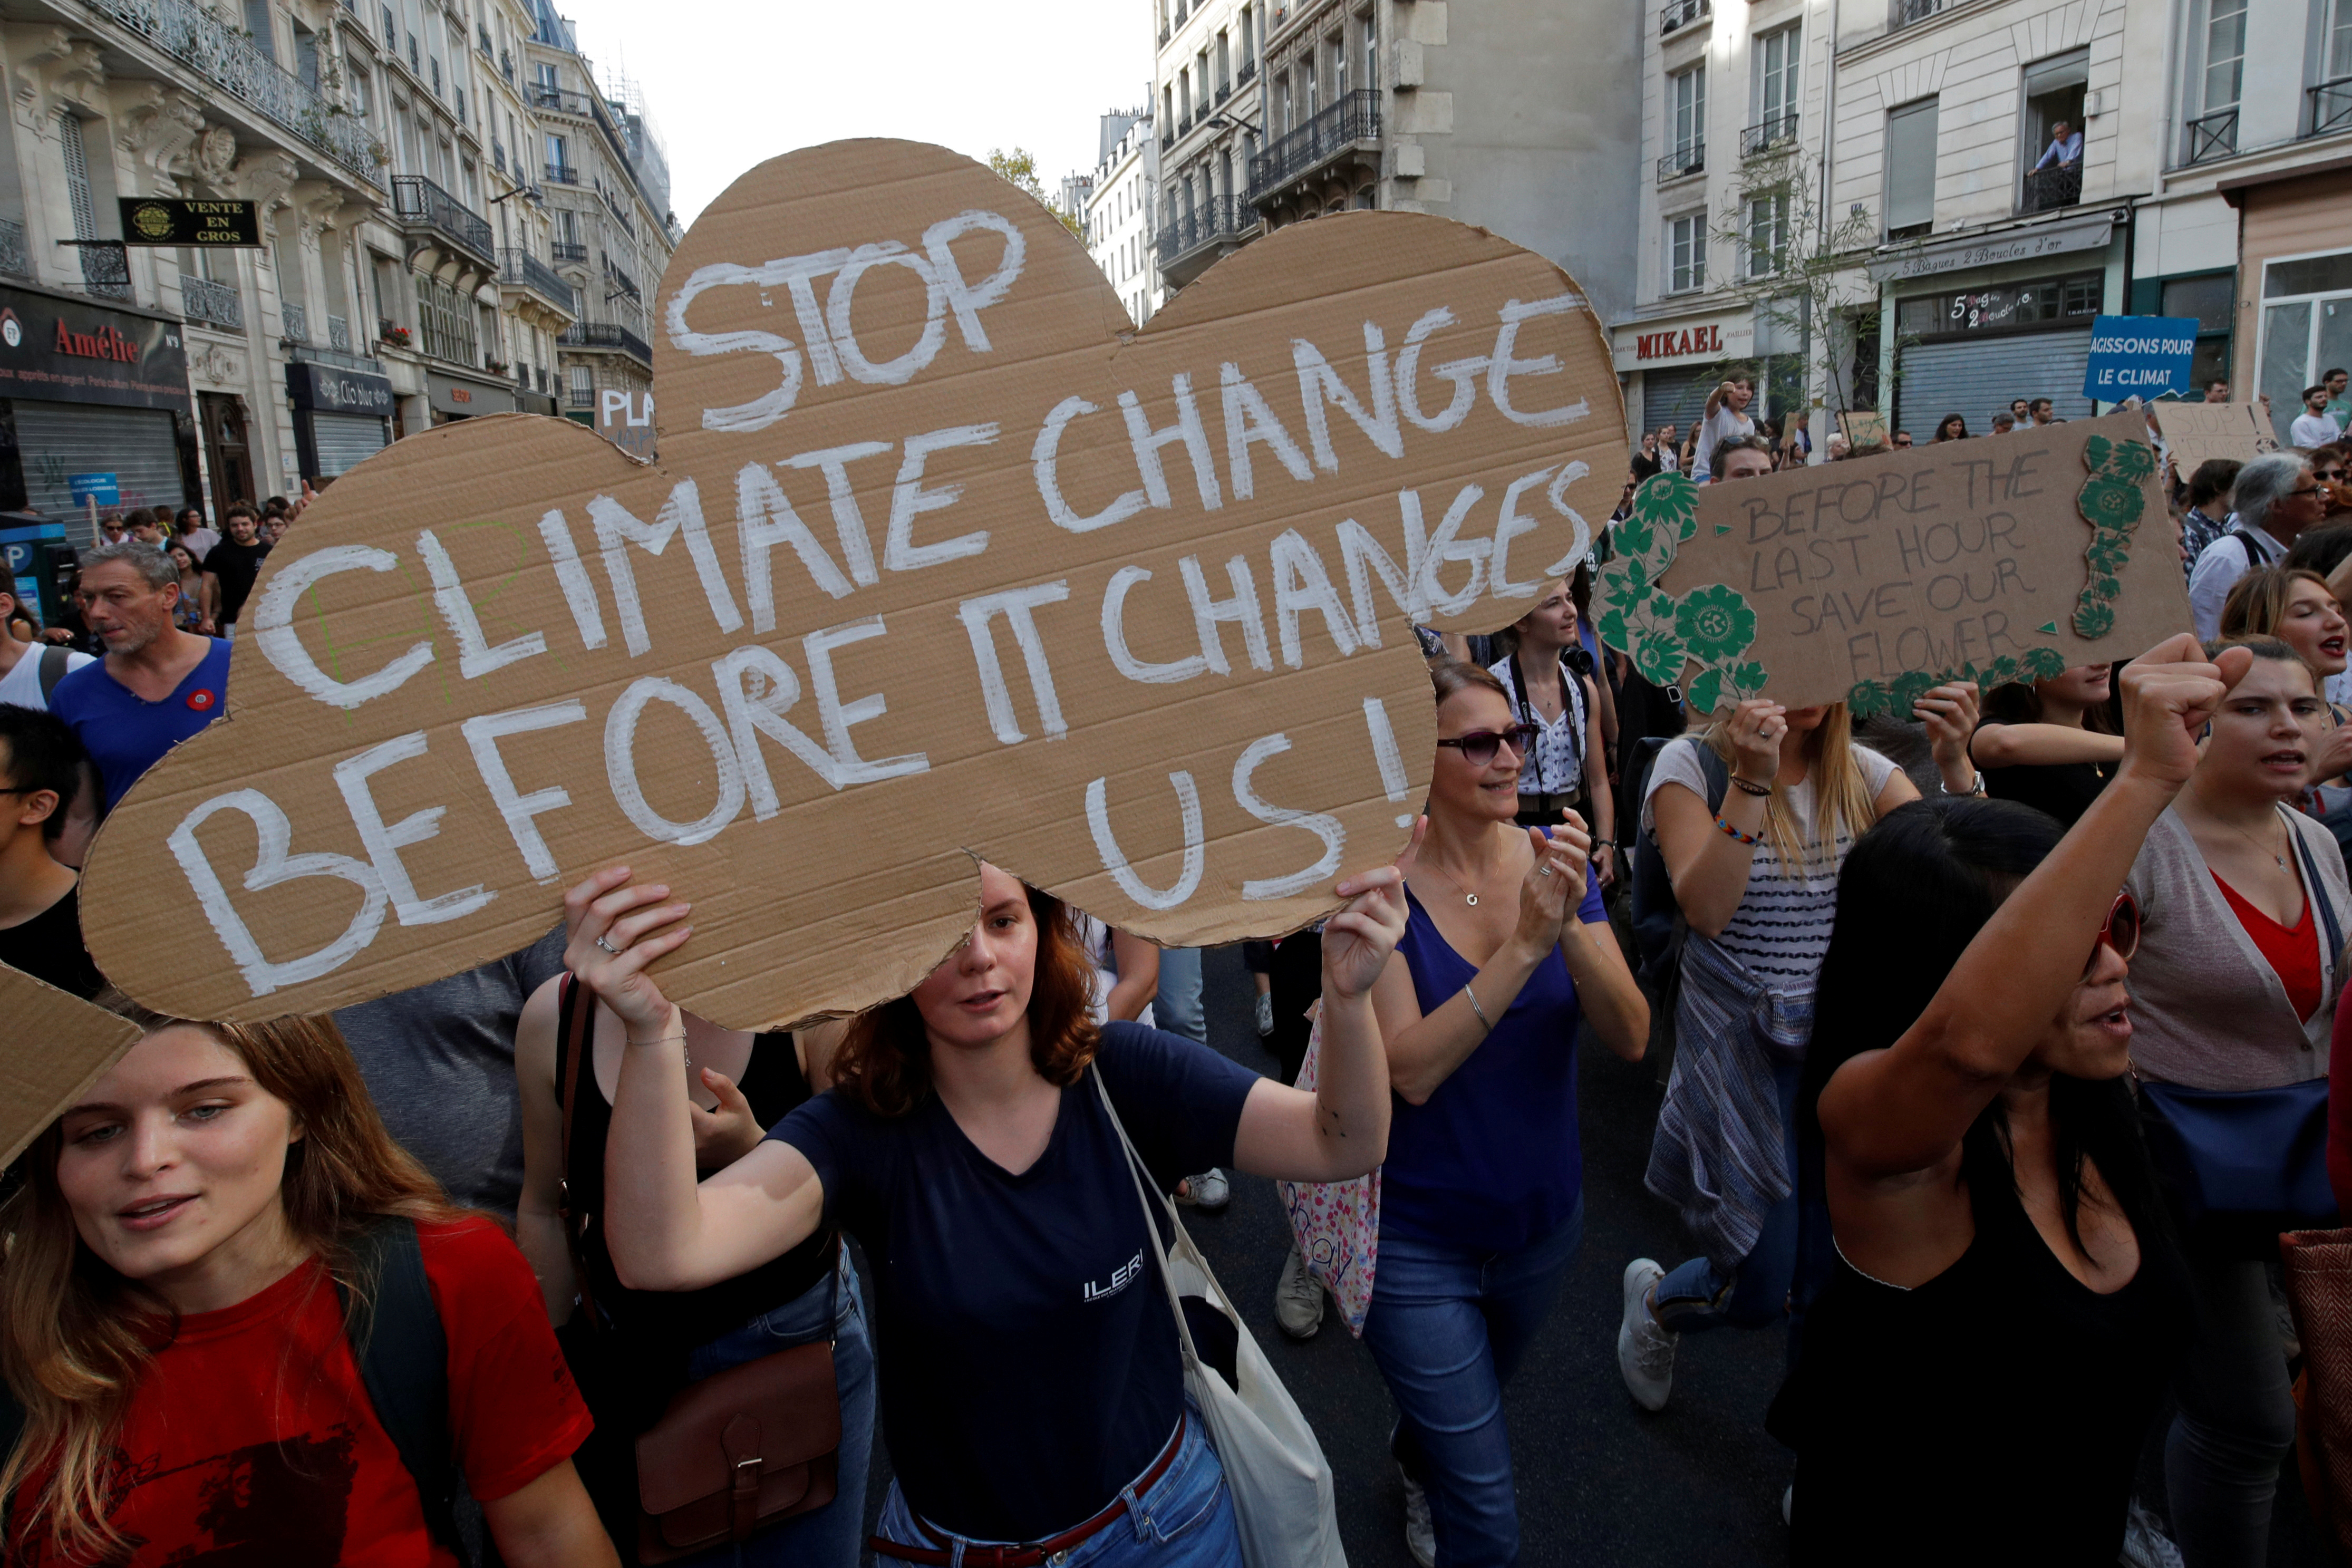 FILE PHOTO: Protesters march to urge politicians to act against climate change in Paris